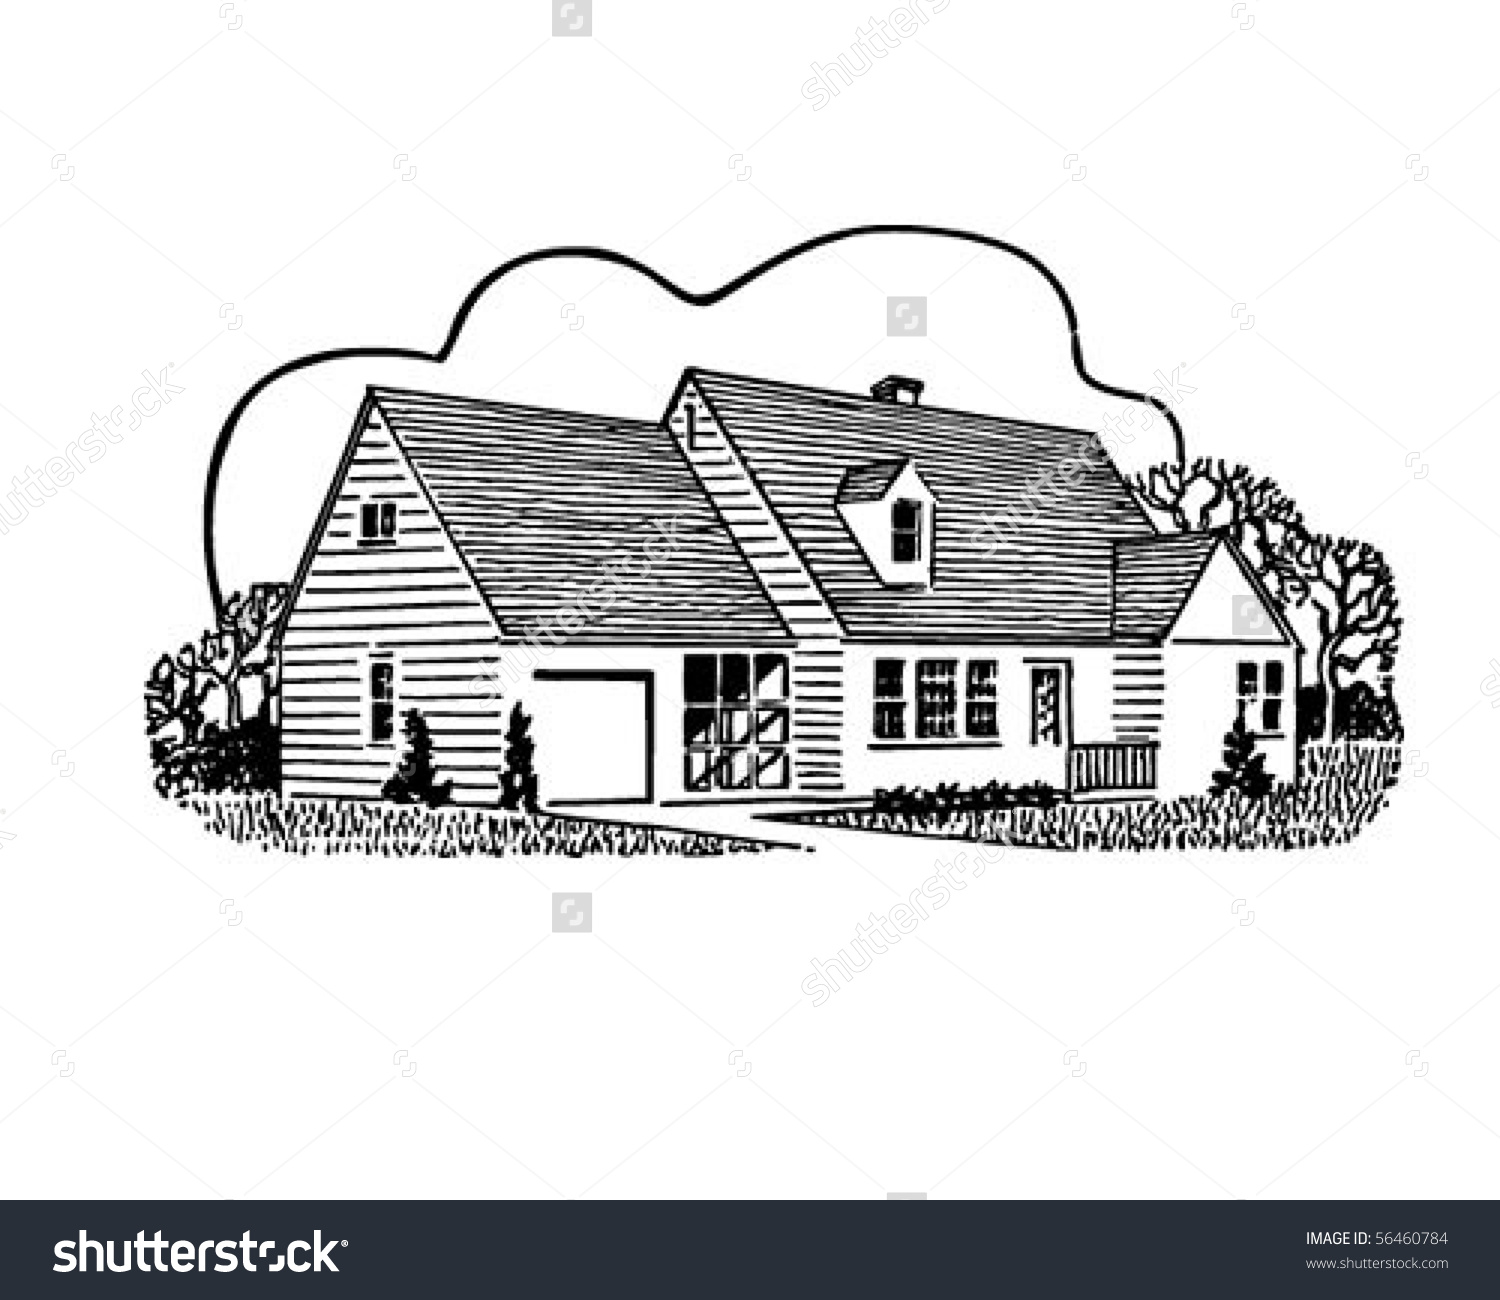 Home sweet home clipart house jpg transparent library Home Sweet Home - Retro Clip Art Stock Vector Illustration ... jpg transparent library